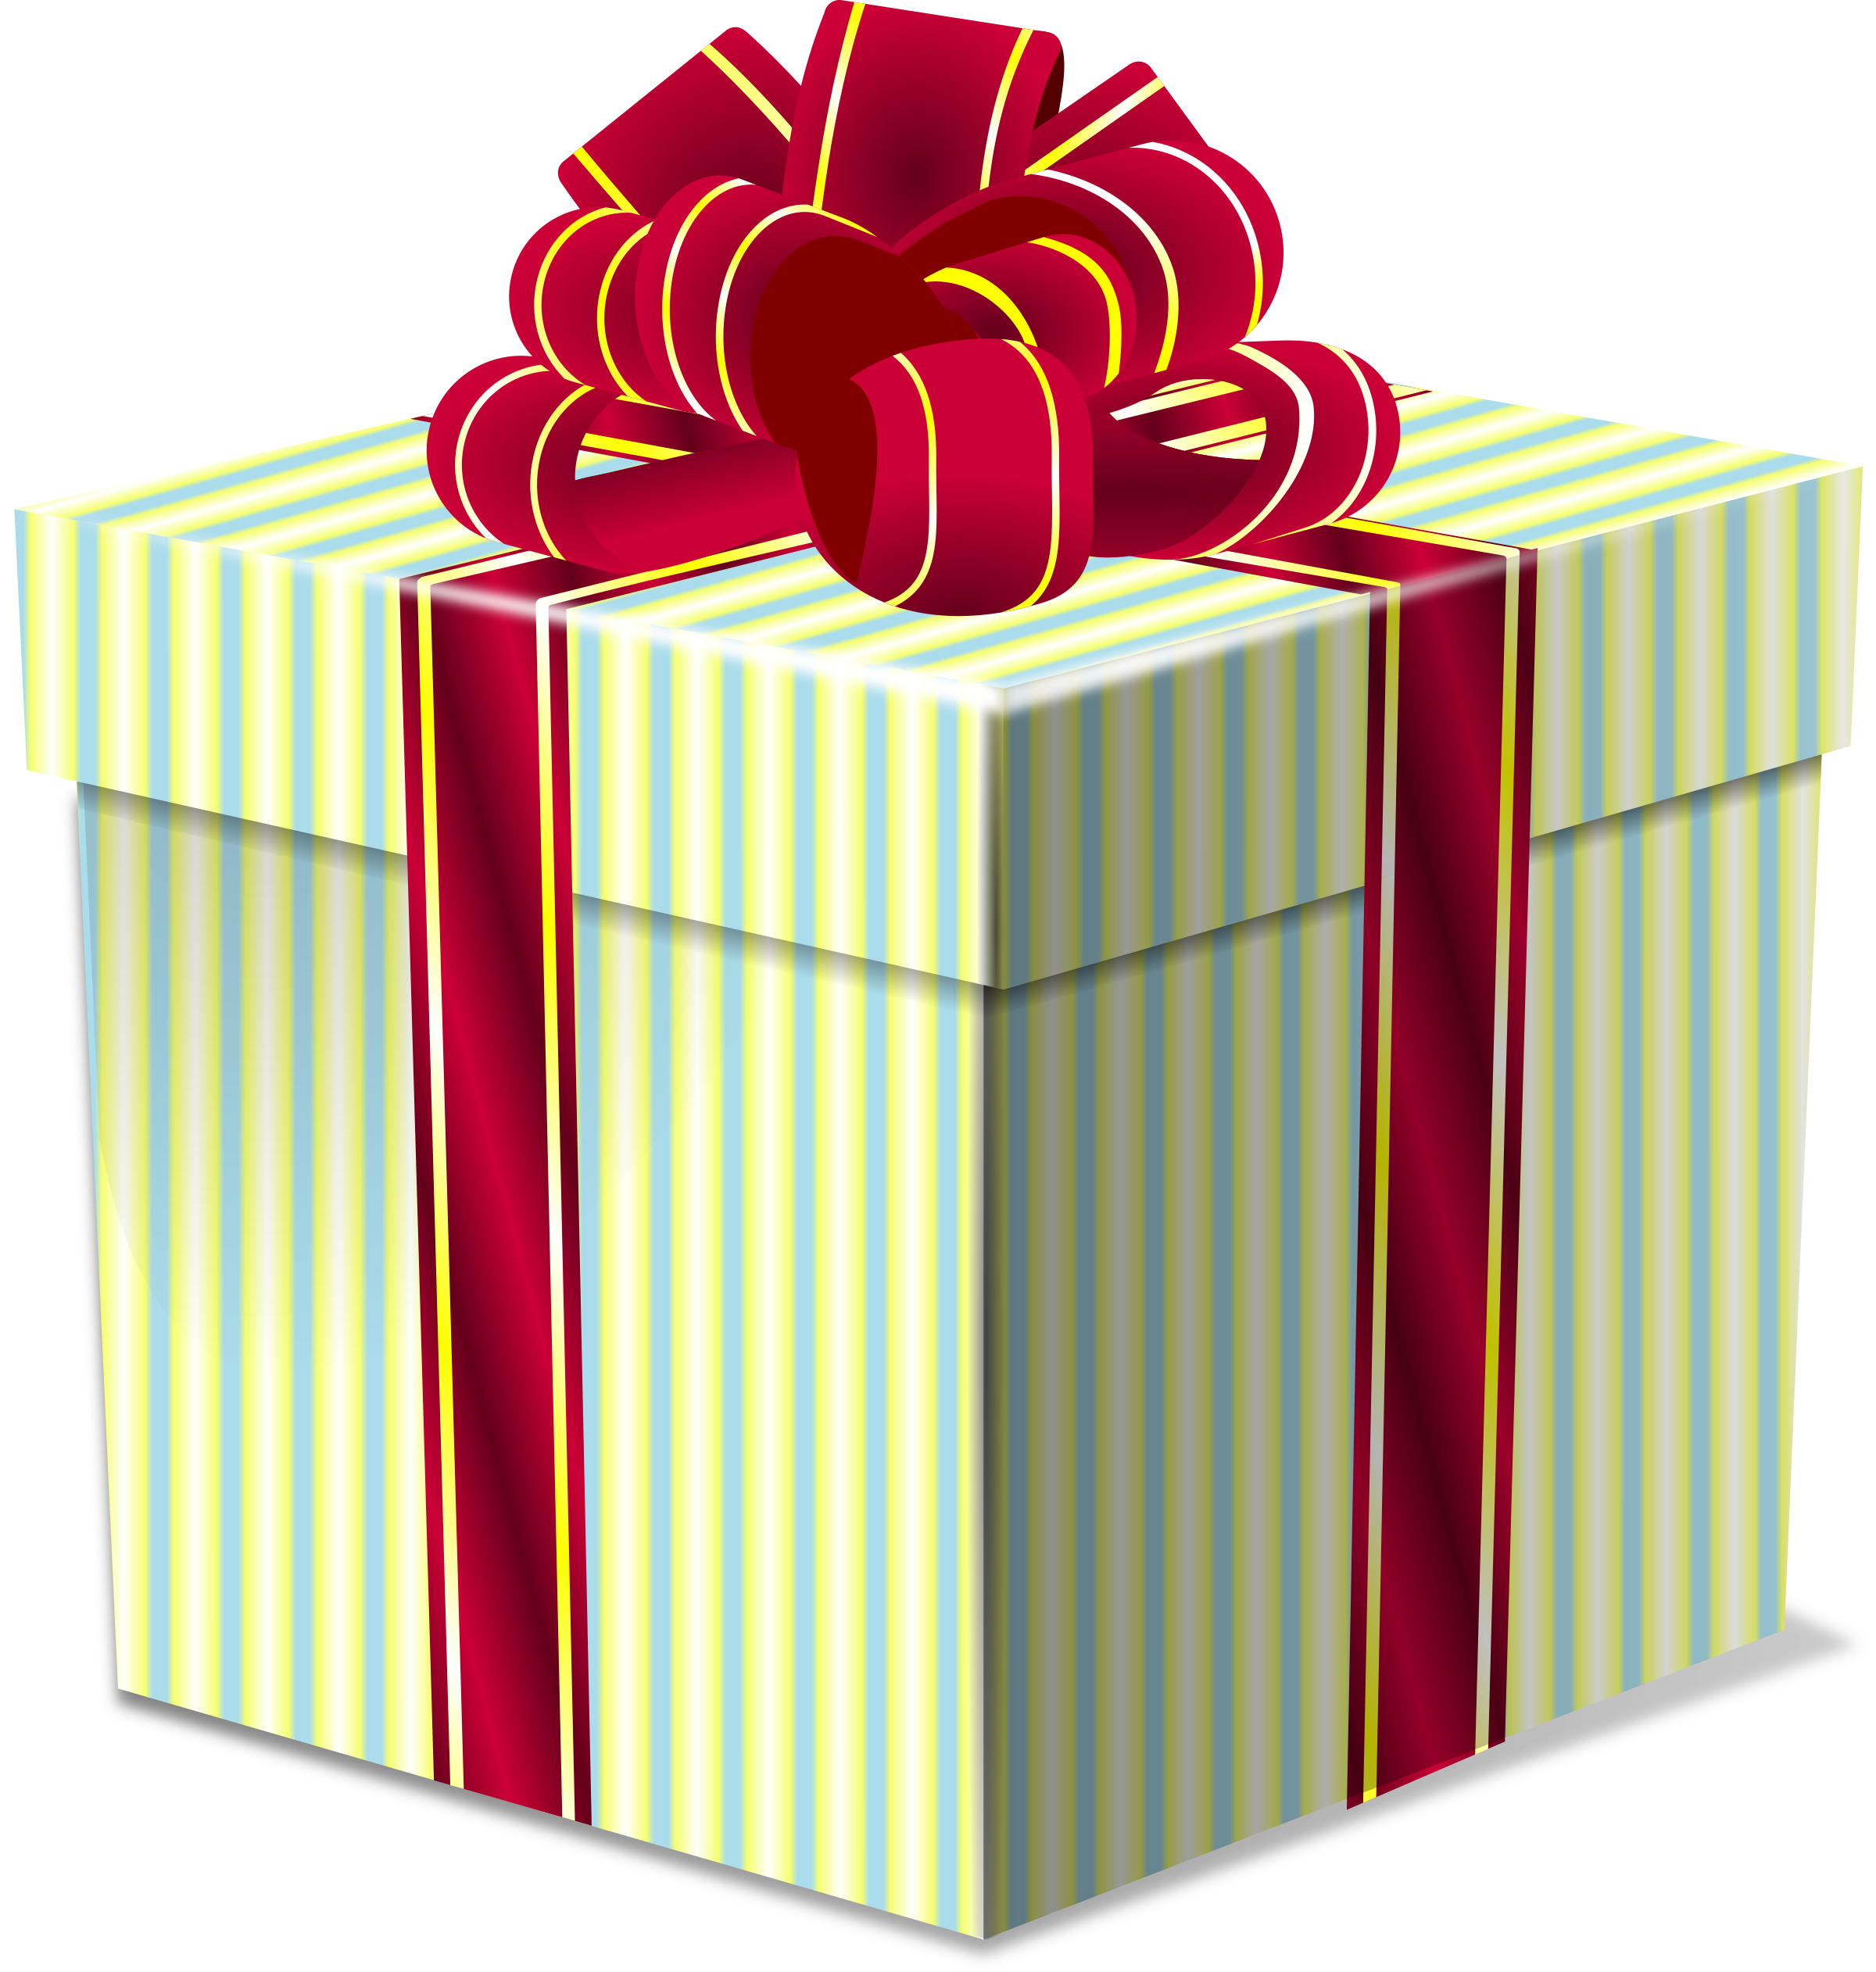 Big image png. Gift clipart rectangle